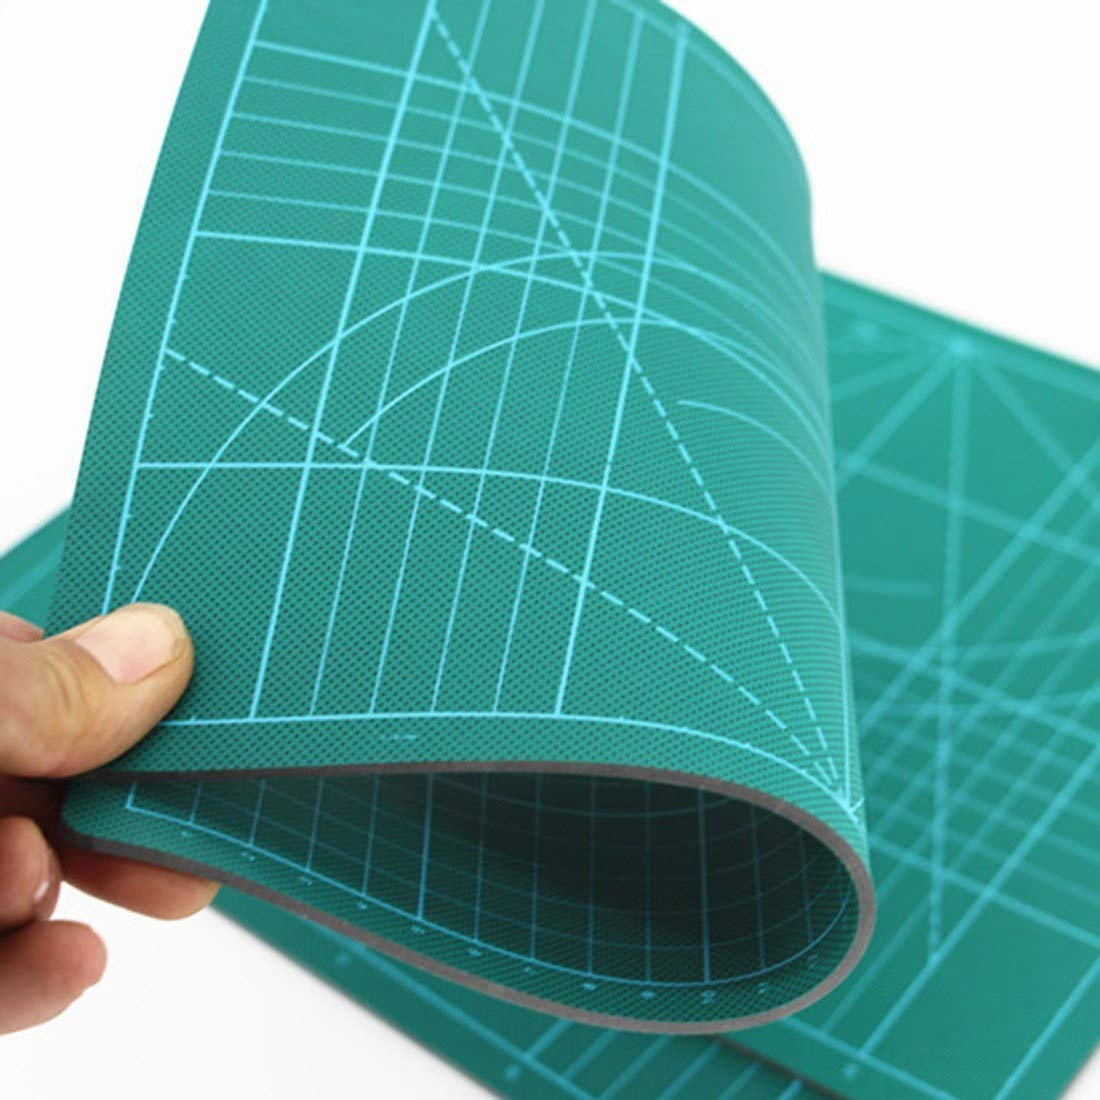 Plastic Materials Patchwork Ruler Blue A4 Cutting Plate 30*22cm School Stationery Supplies Tailor A4 Cutting Mat Rulers